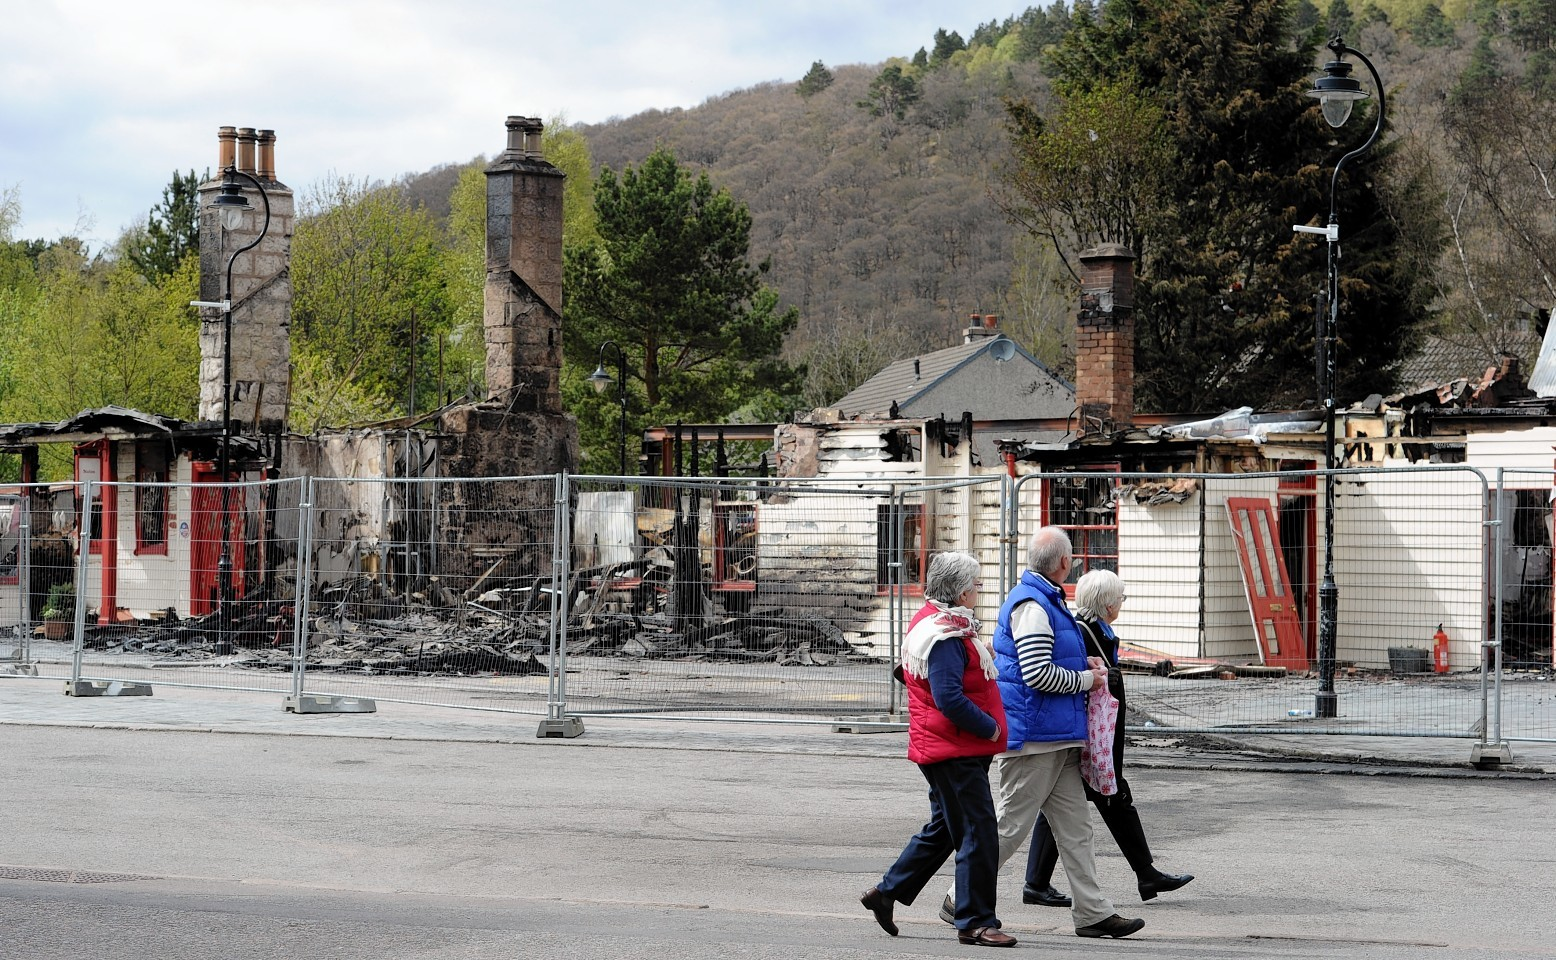 Scottish Fire and Rescue attend a fire at the old Royal Railway station Ballater